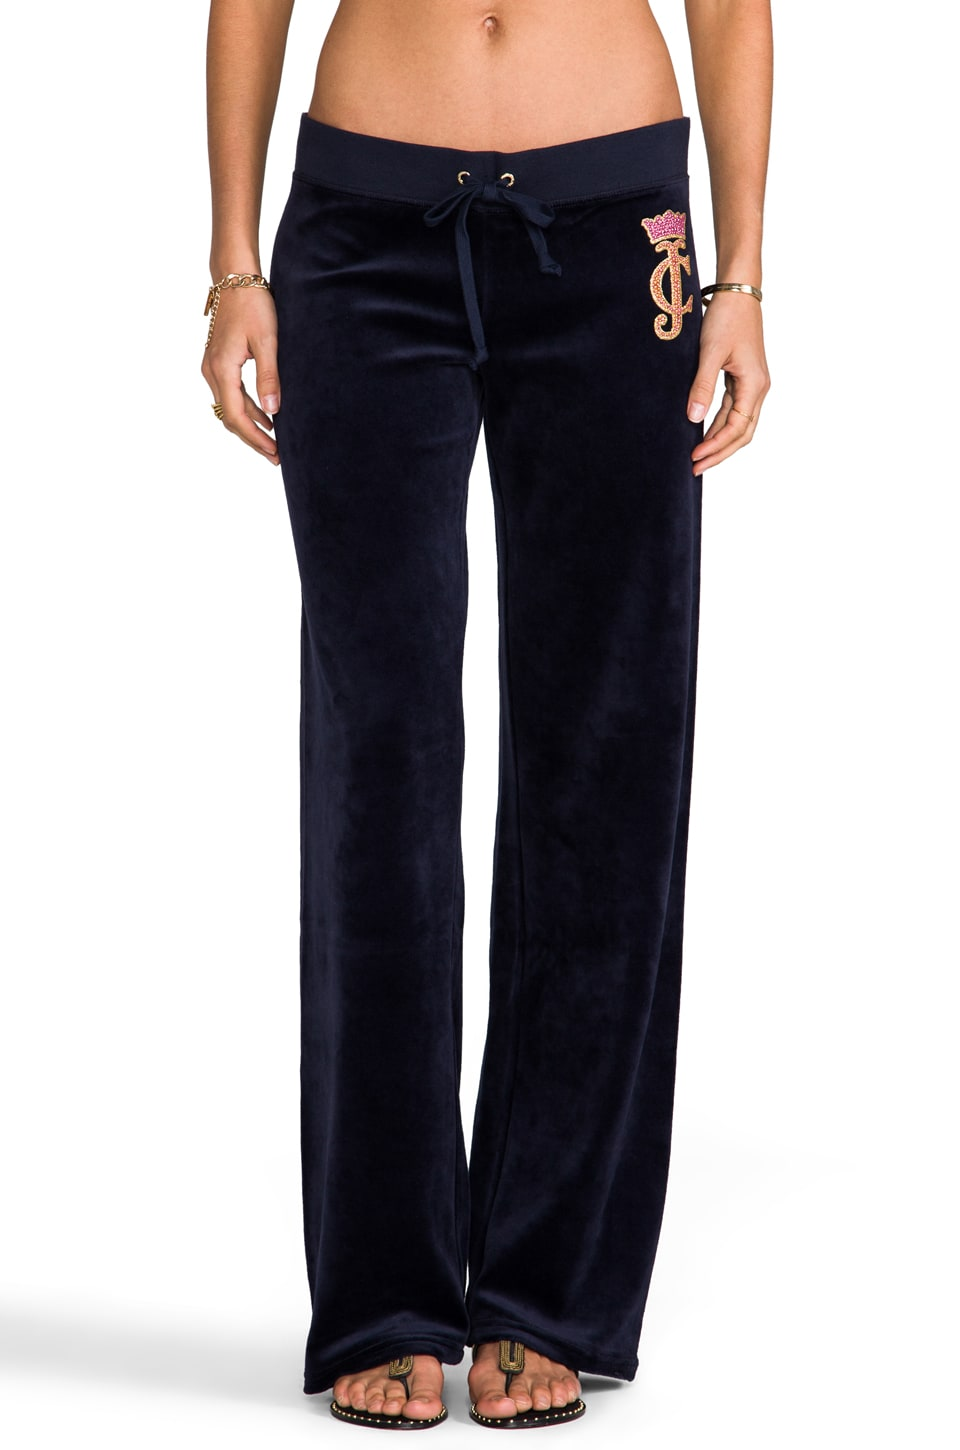 Juicy Couture Crown Cameo Velour Pant in Regal